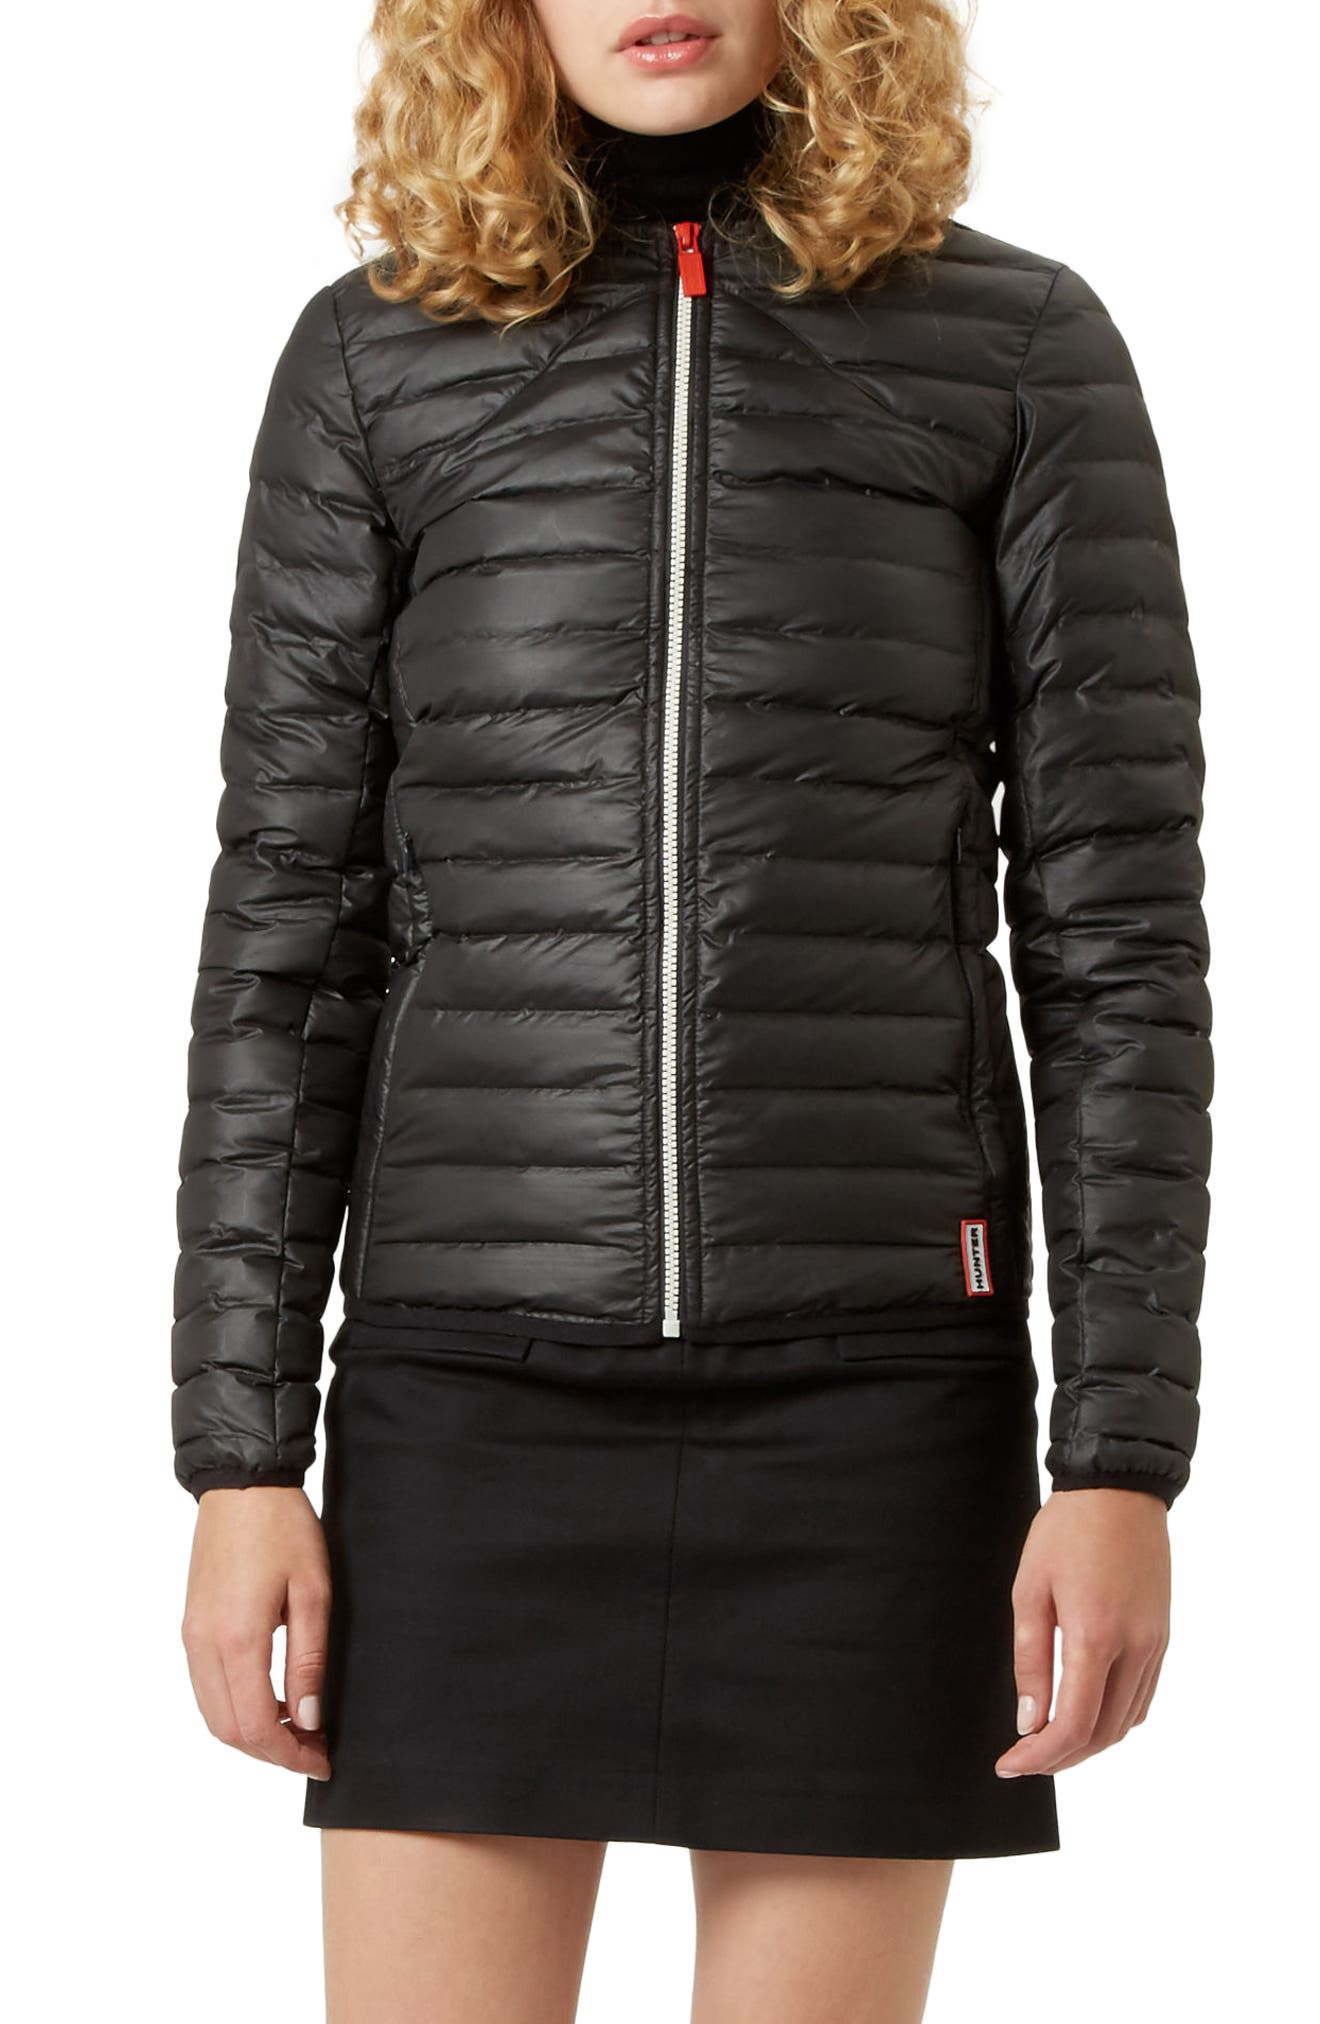 Original Midlayer Water Resistant Thermolite<sup>®</sup> Insulated Jacket,                         Main,                         color, 001